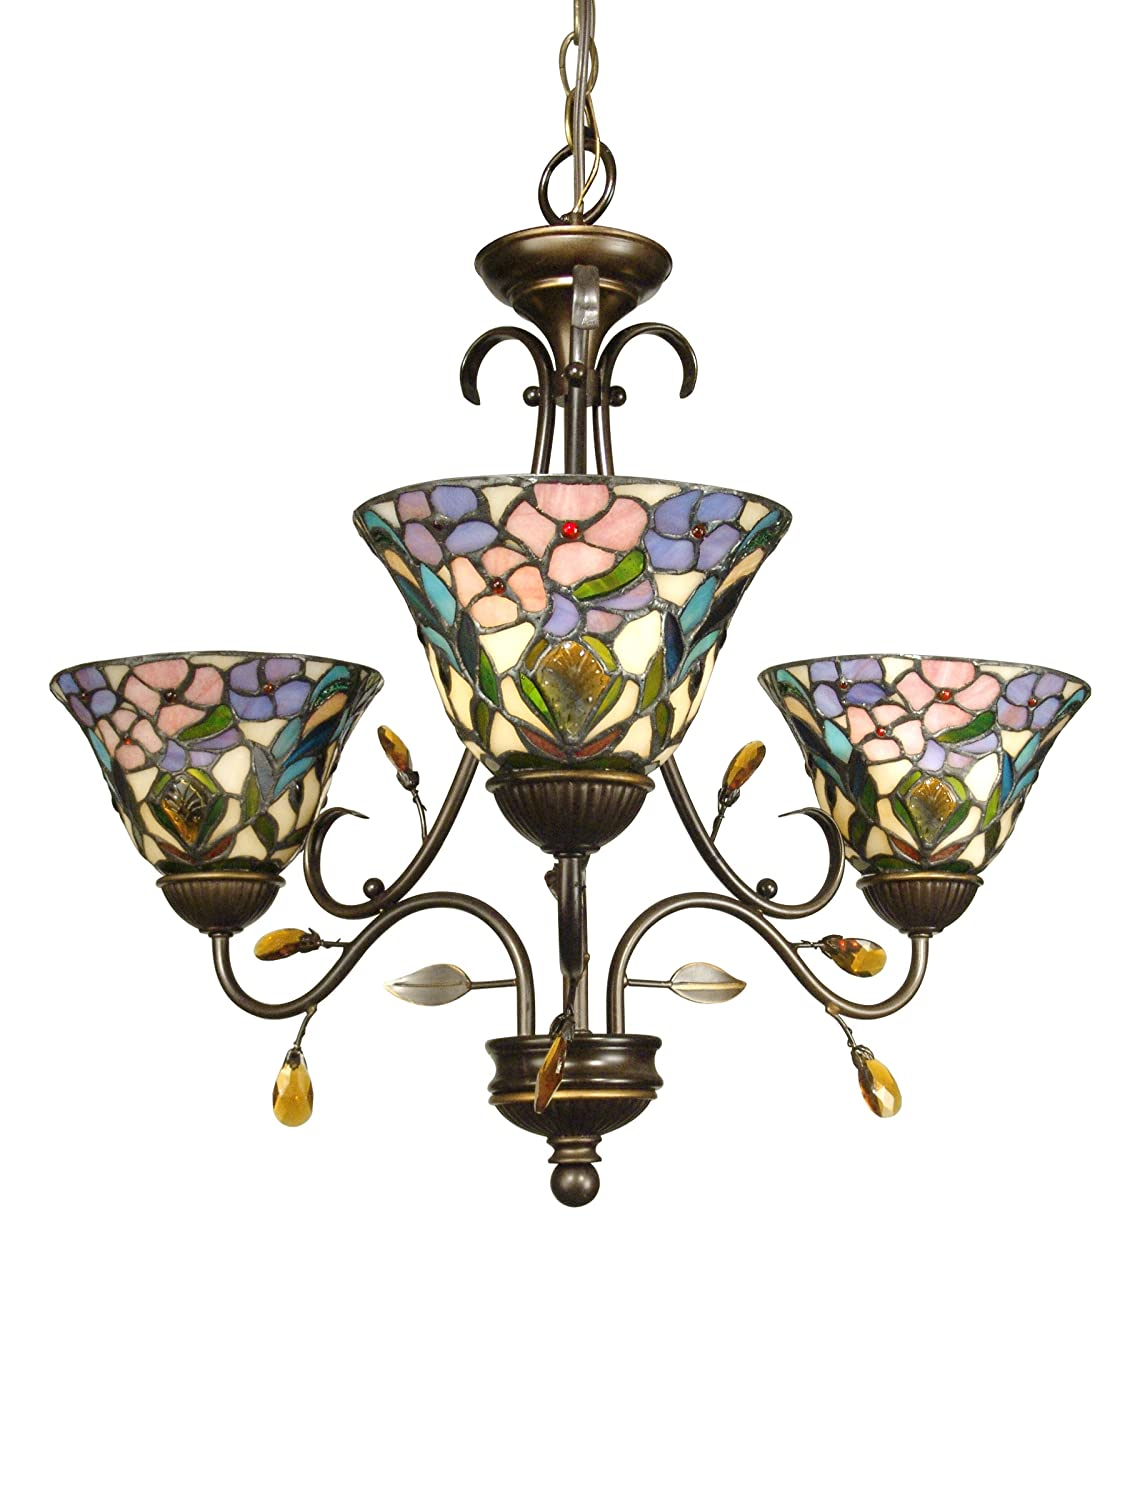 Dale tiffany th90214 3 light crystal peony chandelier antique dale tiffany th90214 3 light crystal peony chandelier antique golden sand and art glass shade dale tiffany crystal lamps amazon arubaitofo Gallery